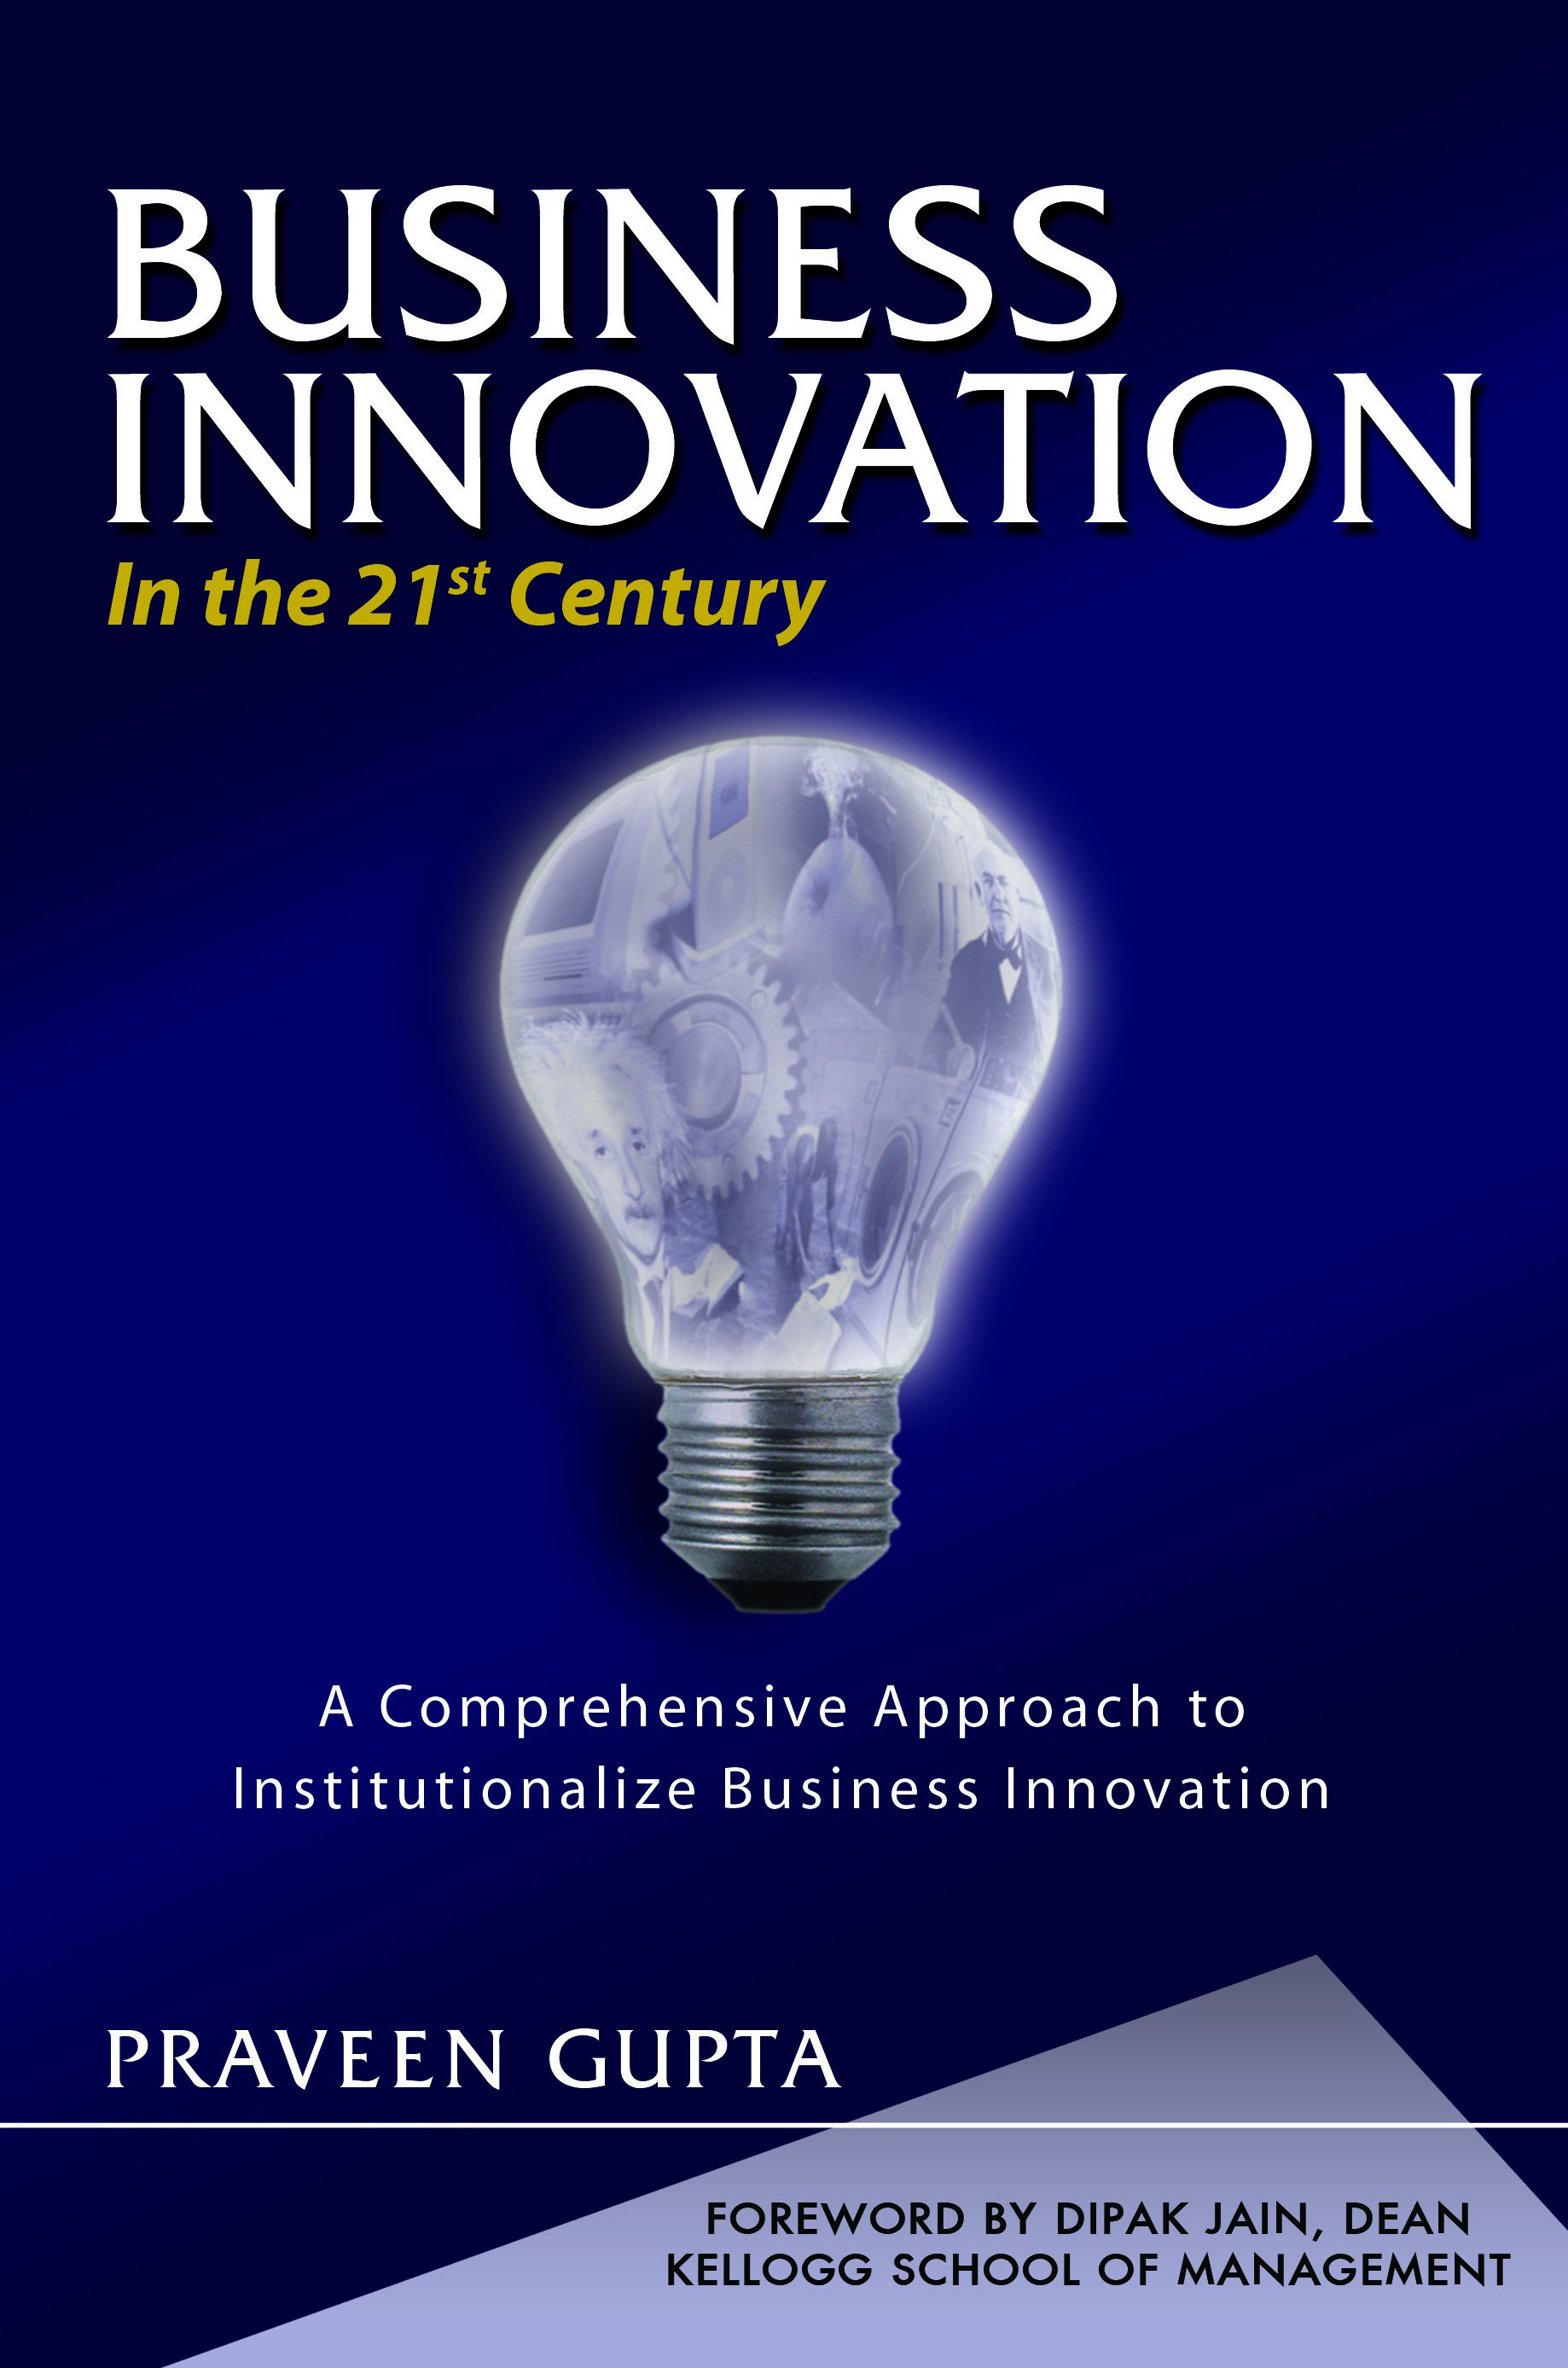 Accelper Releases Two Books On Business Innovation And Six Sigma